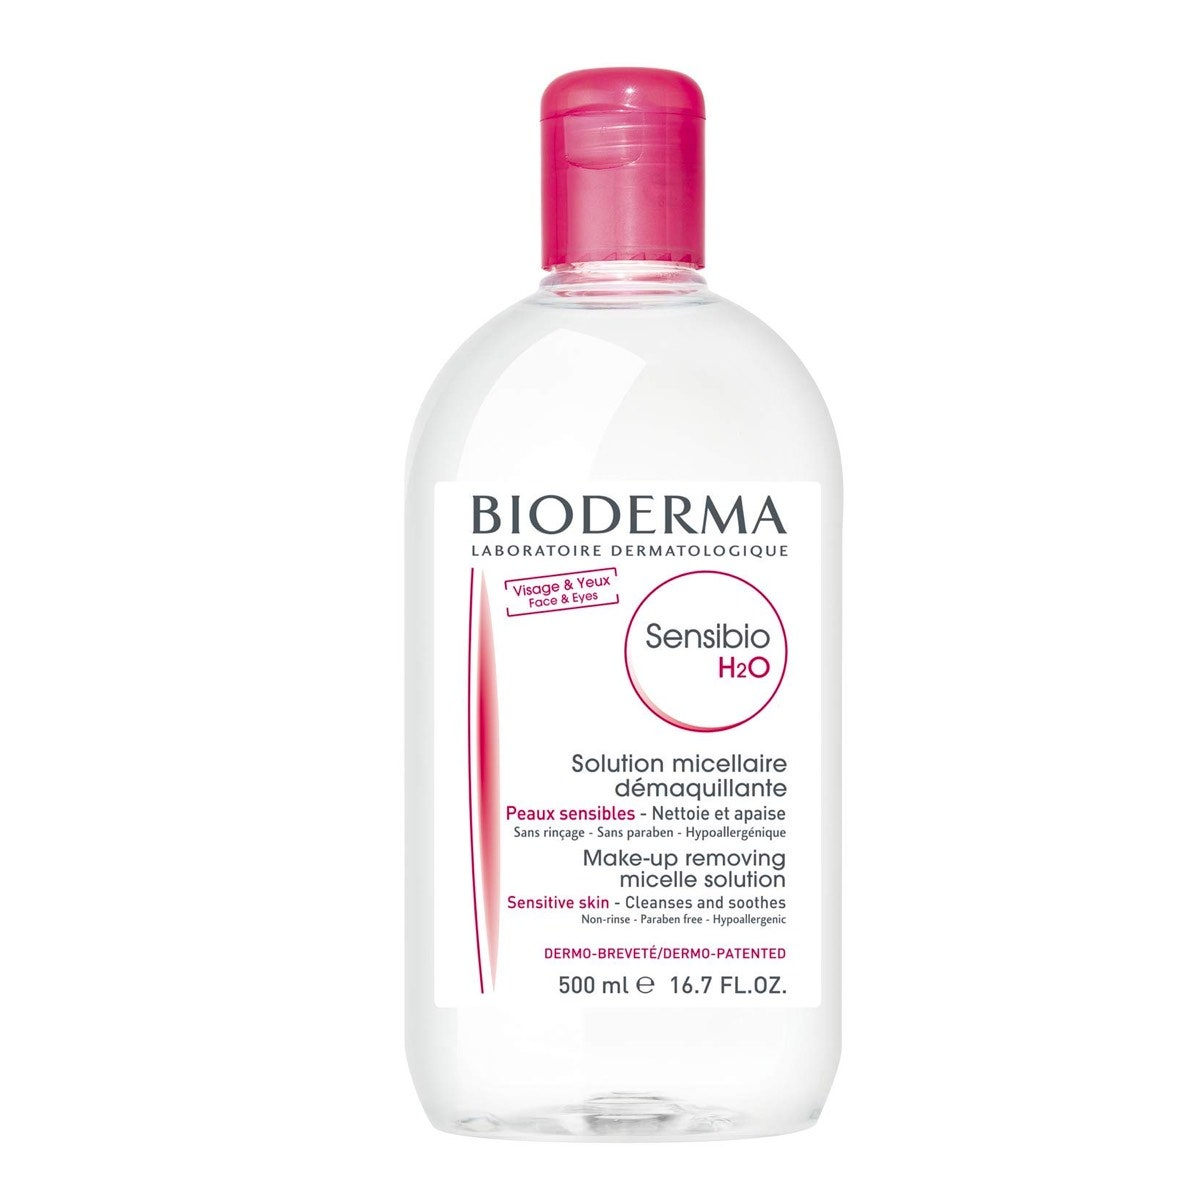 A bottle of Bioderma Sensibio H2O Soothing Micellar Cleansing Water and Makeup Removing Solution for Sensitive Skin on a white background